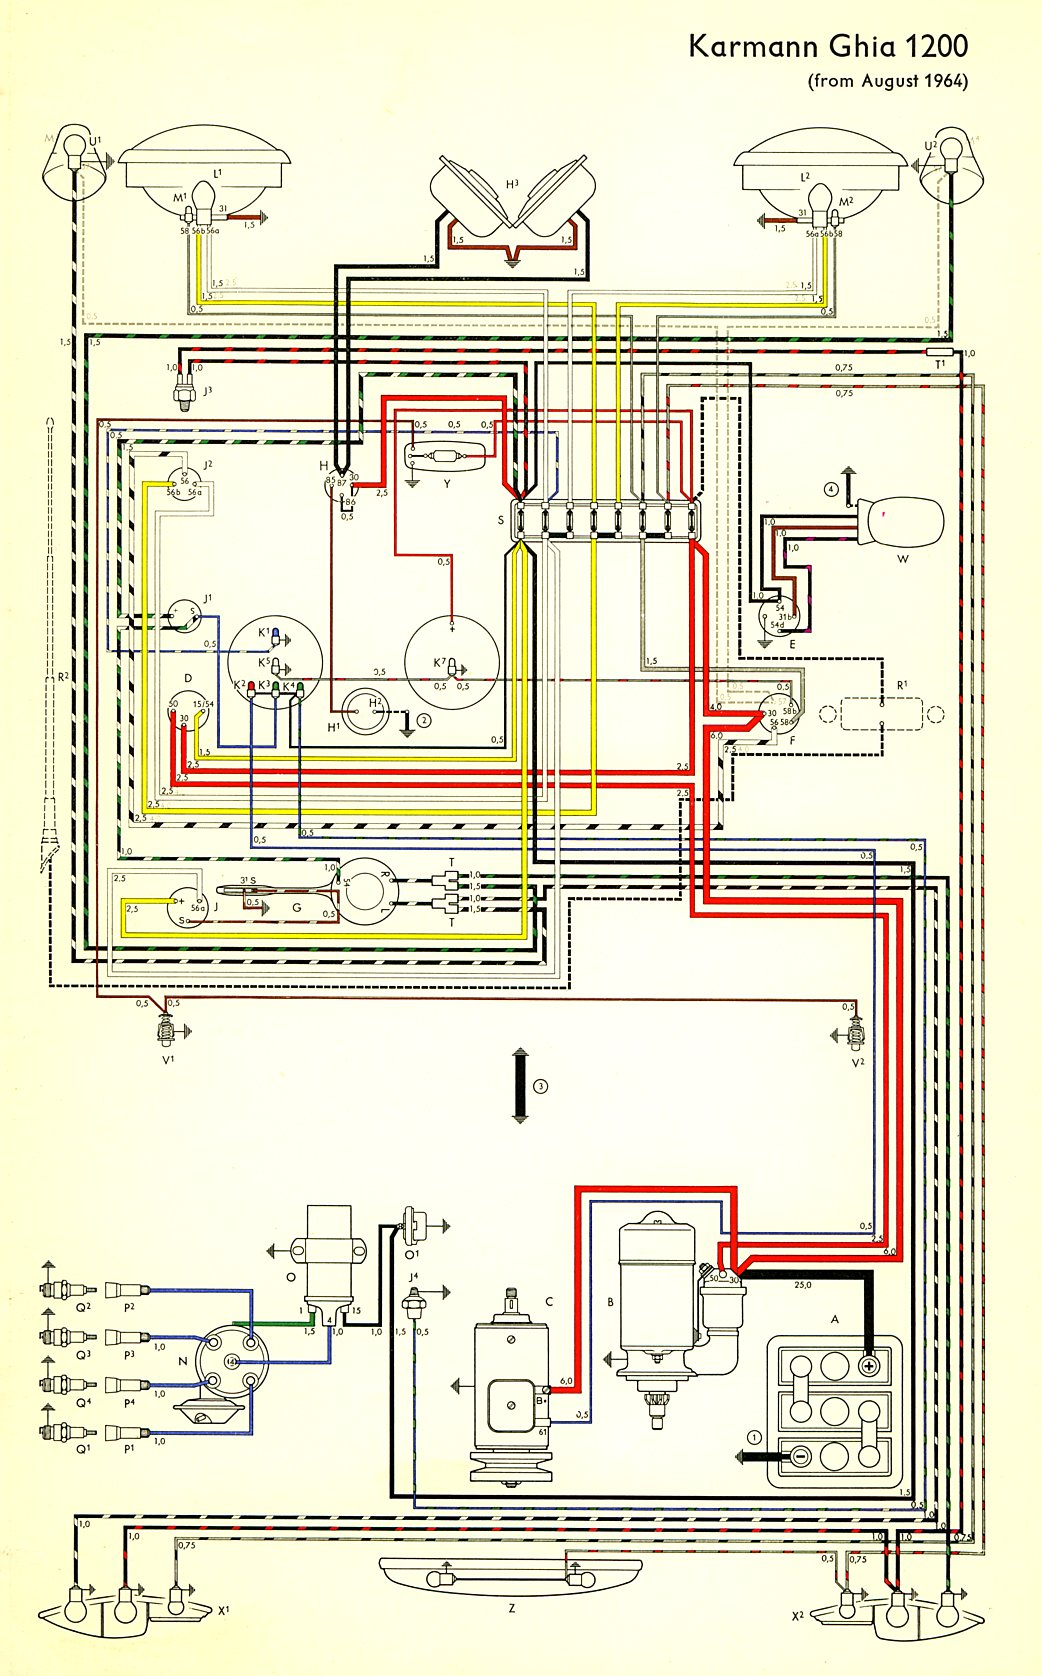 thesamba com karmann ghia wiring diagrams tail light wiring diagram for 1974 cj5 chevy wiring harness for 1974 #7